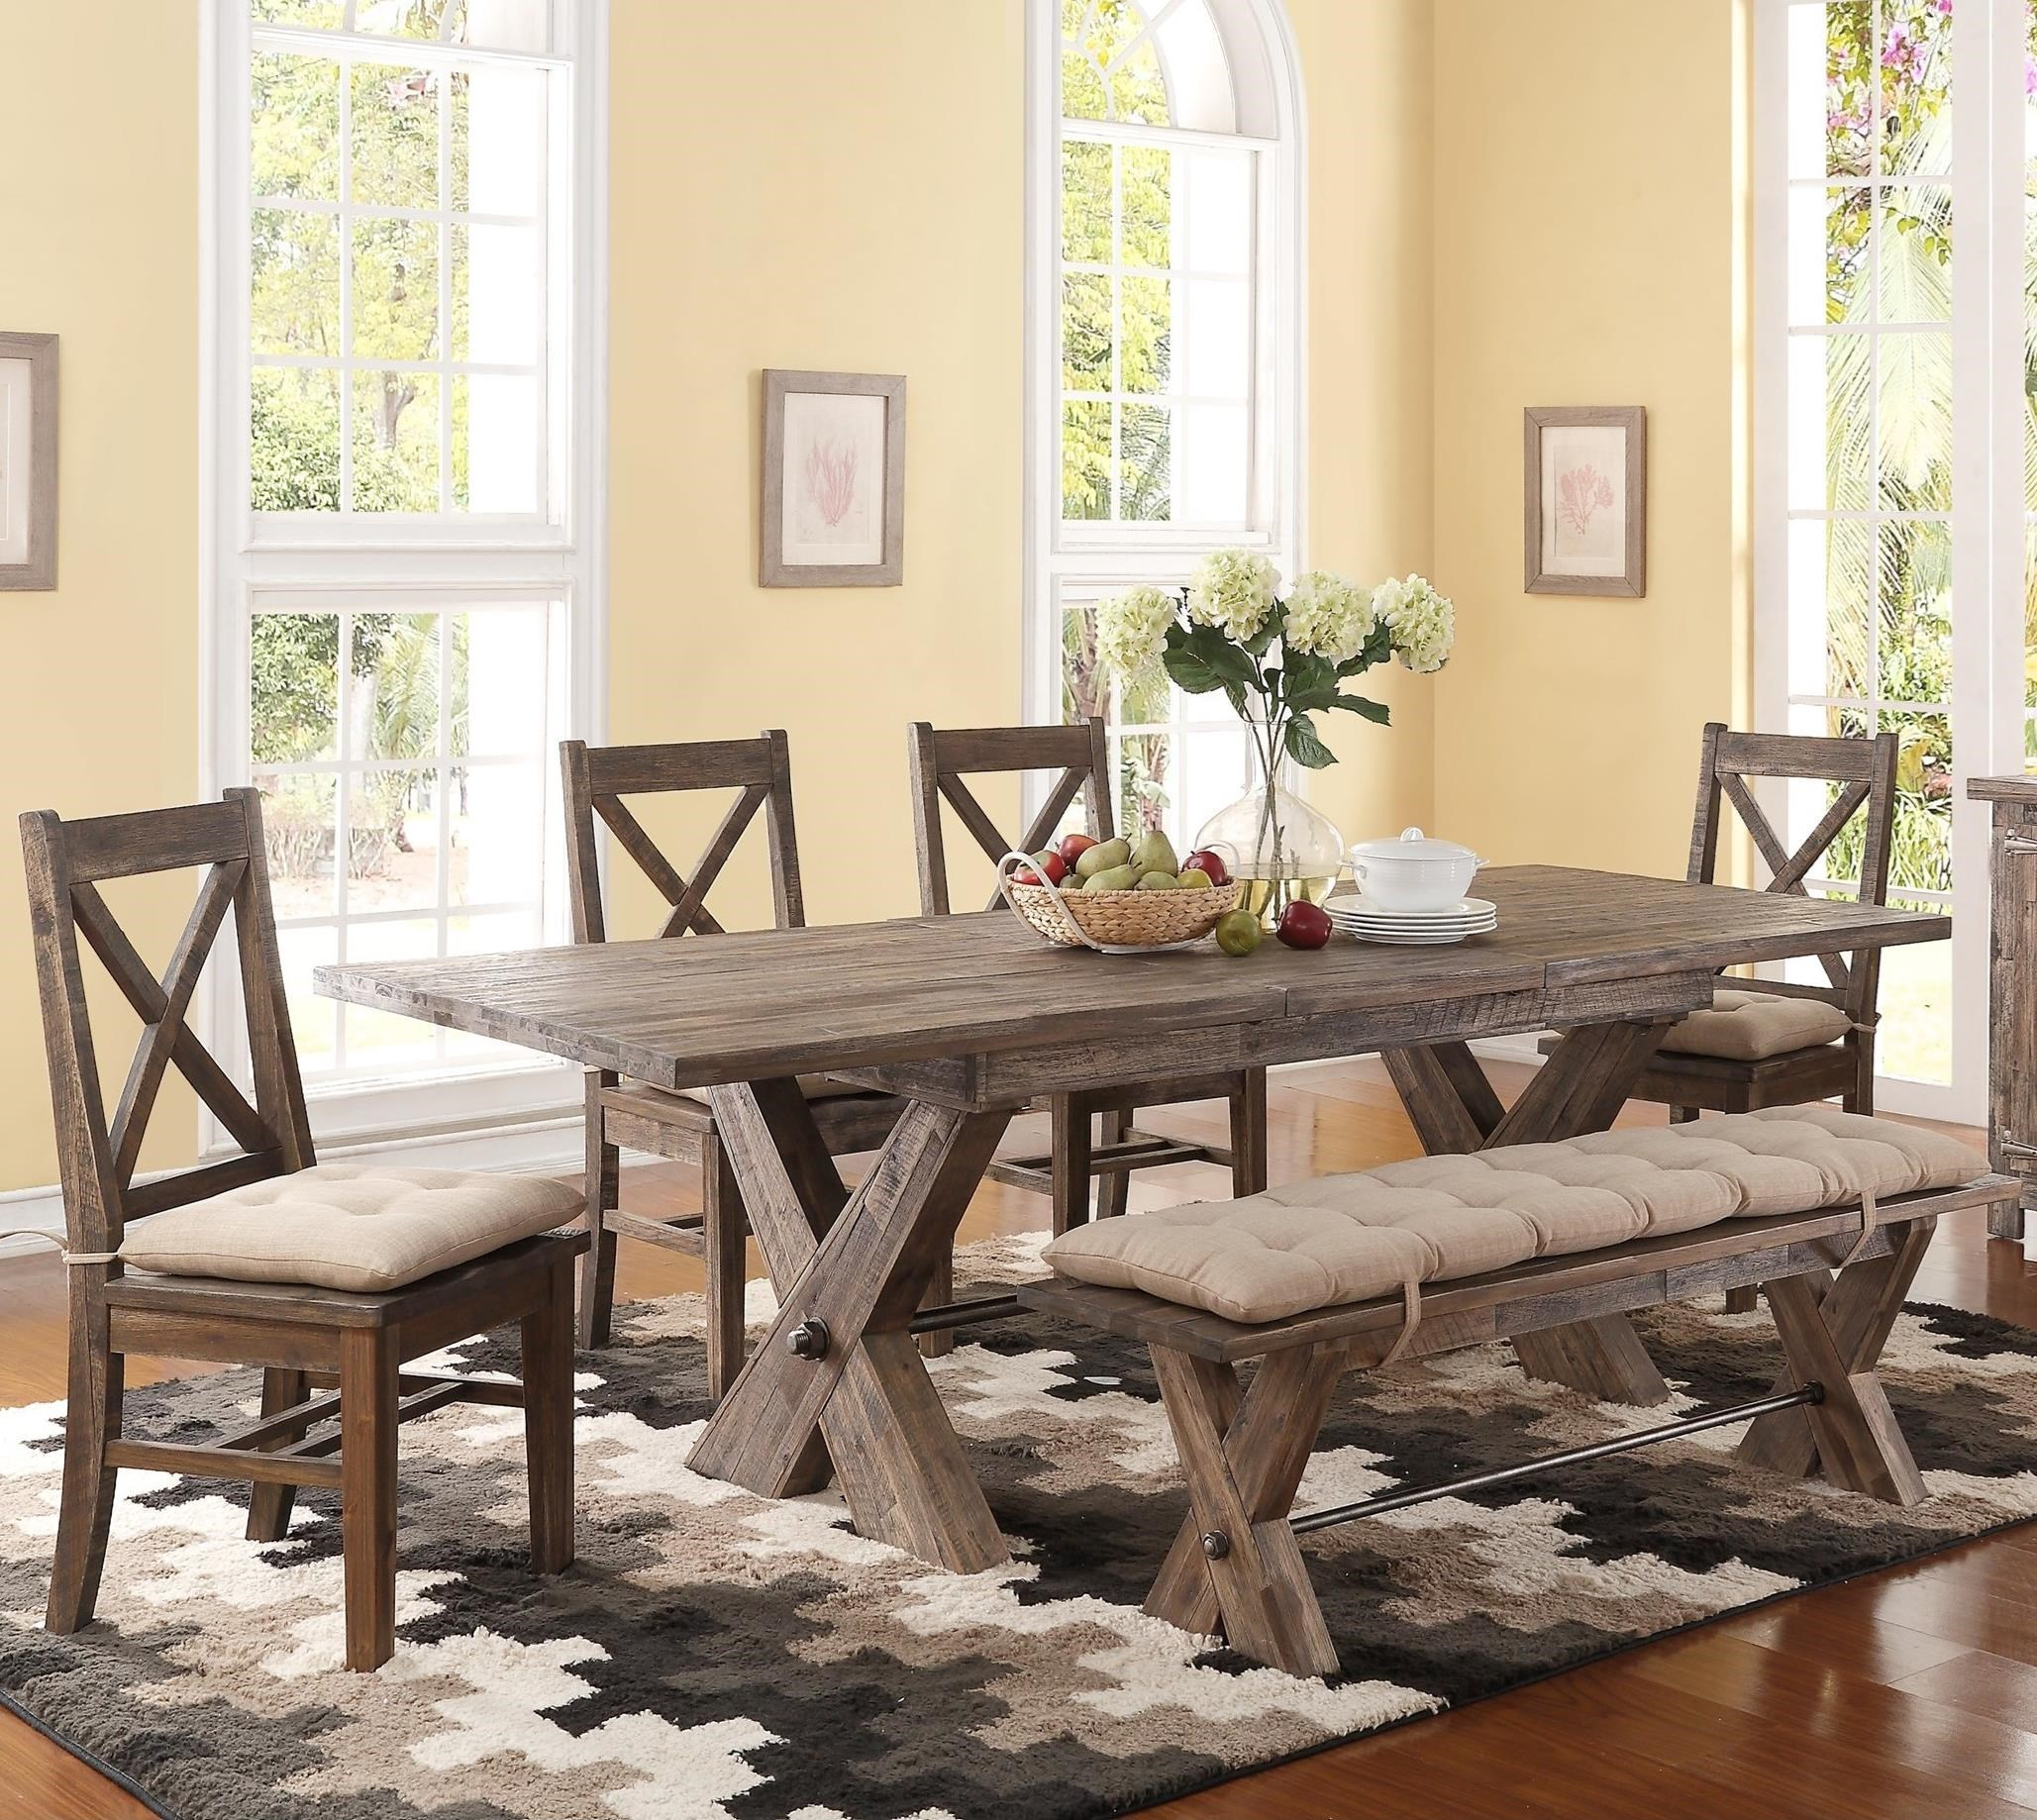 New Classic Tuscany Park6 Piece Trestle Dining Table Set ...